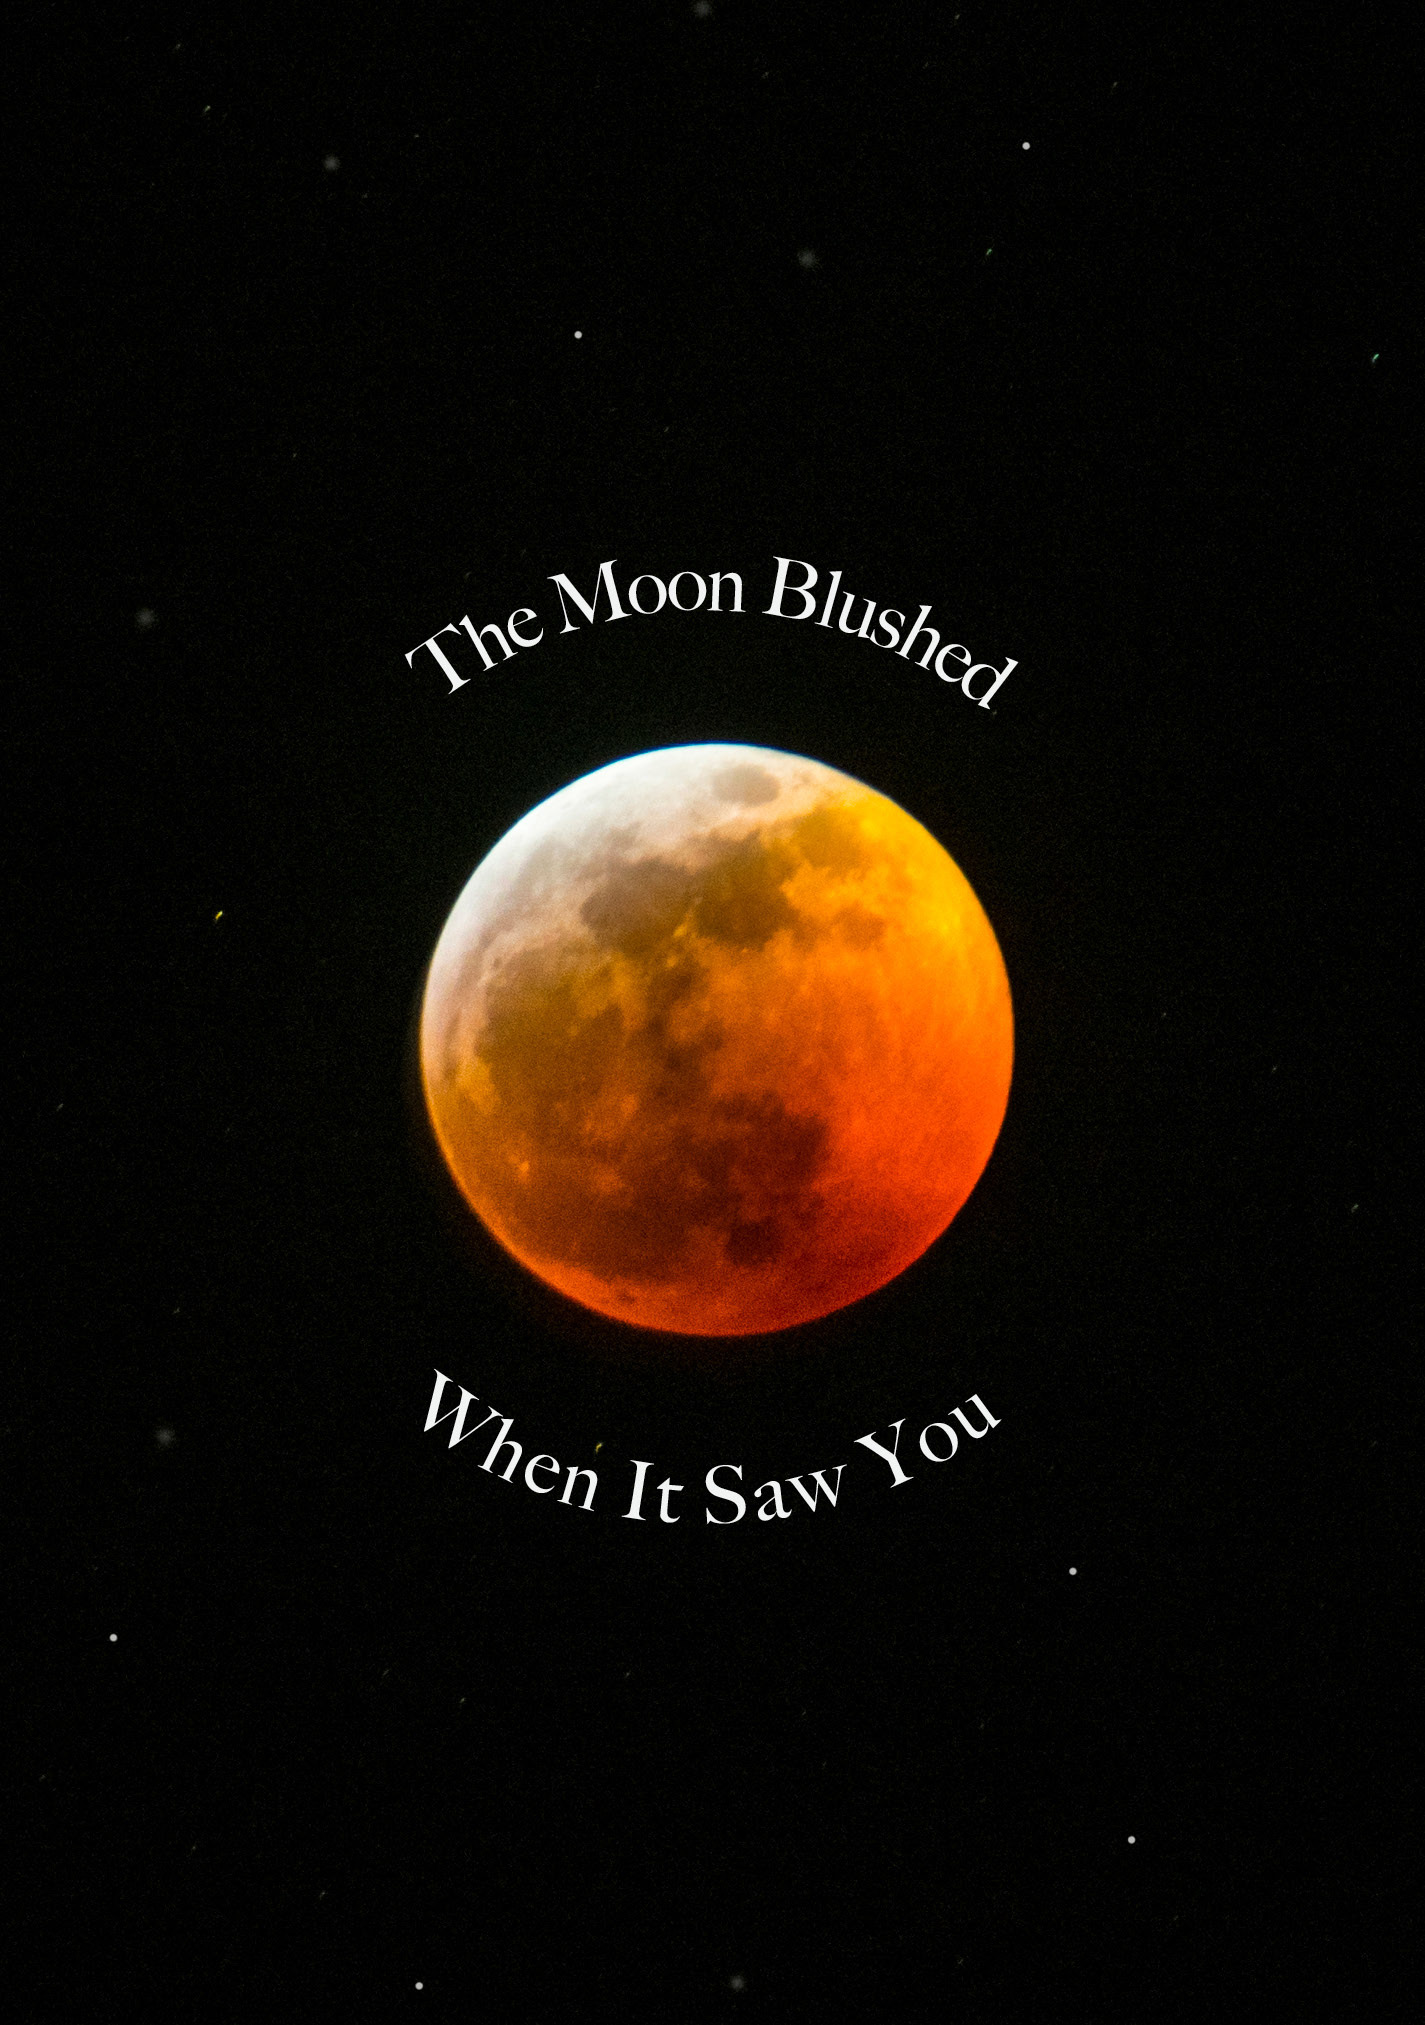 The Moon Blushed When It Saw You